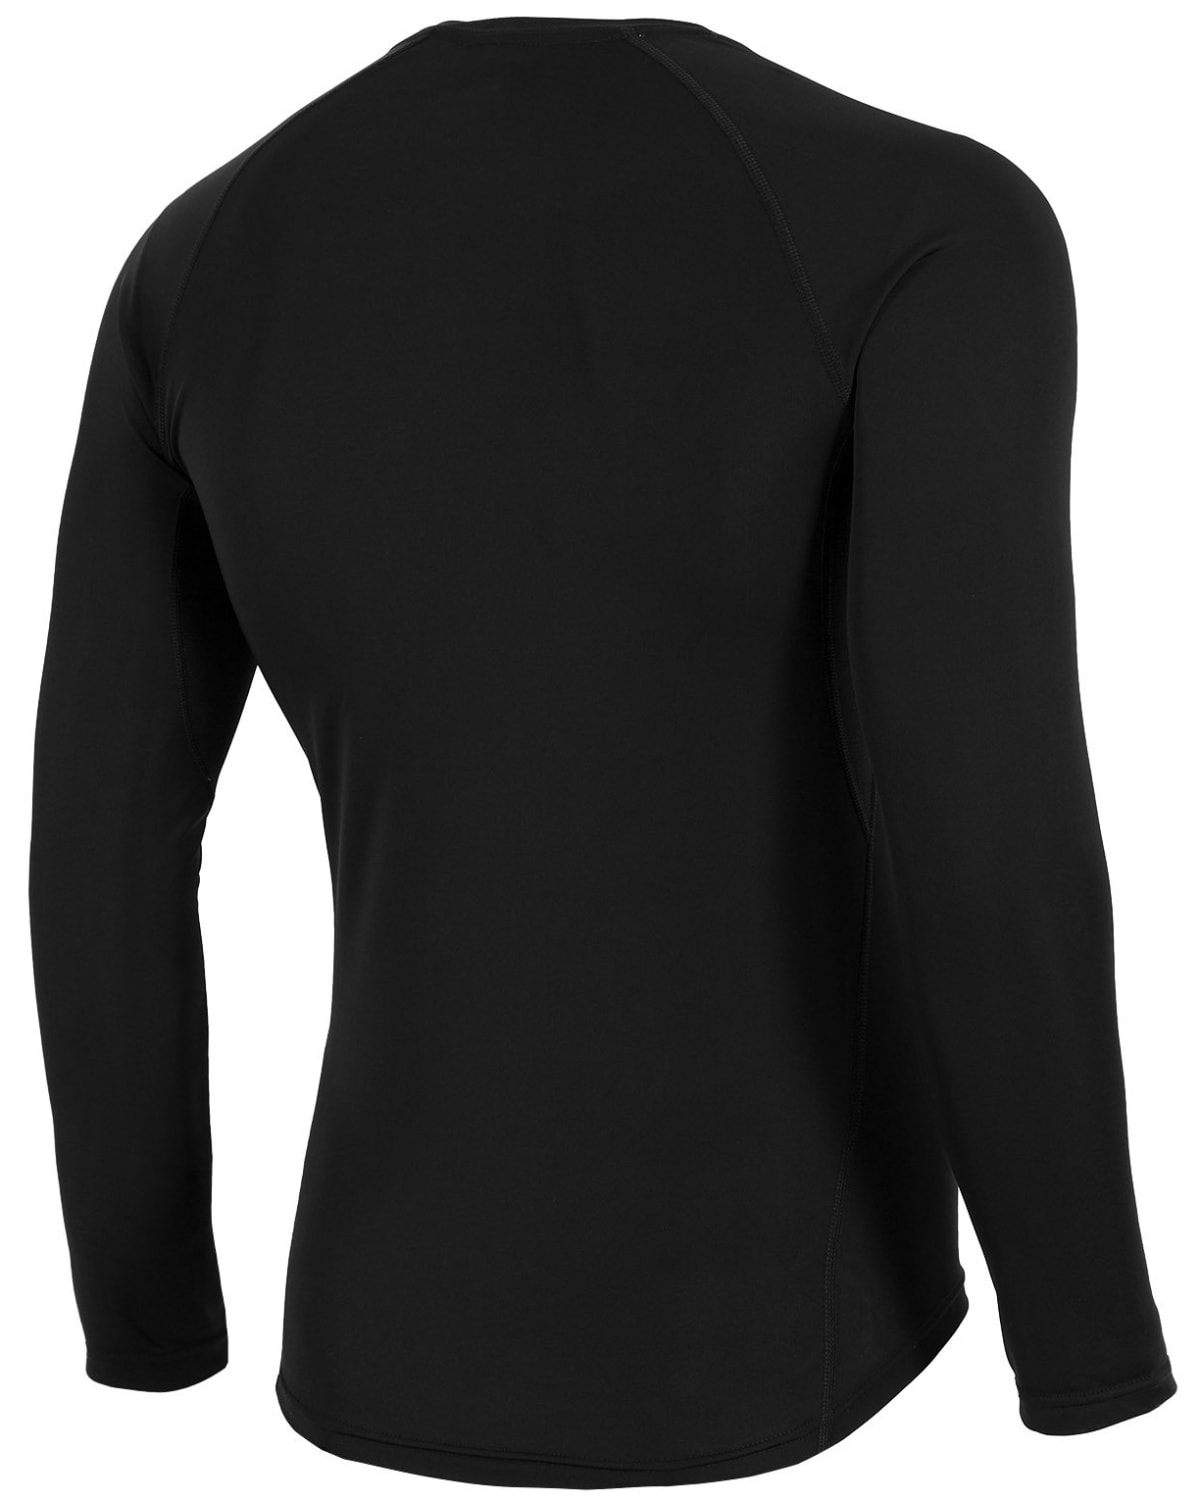 4F Men's Functional Long Sleeve – Black